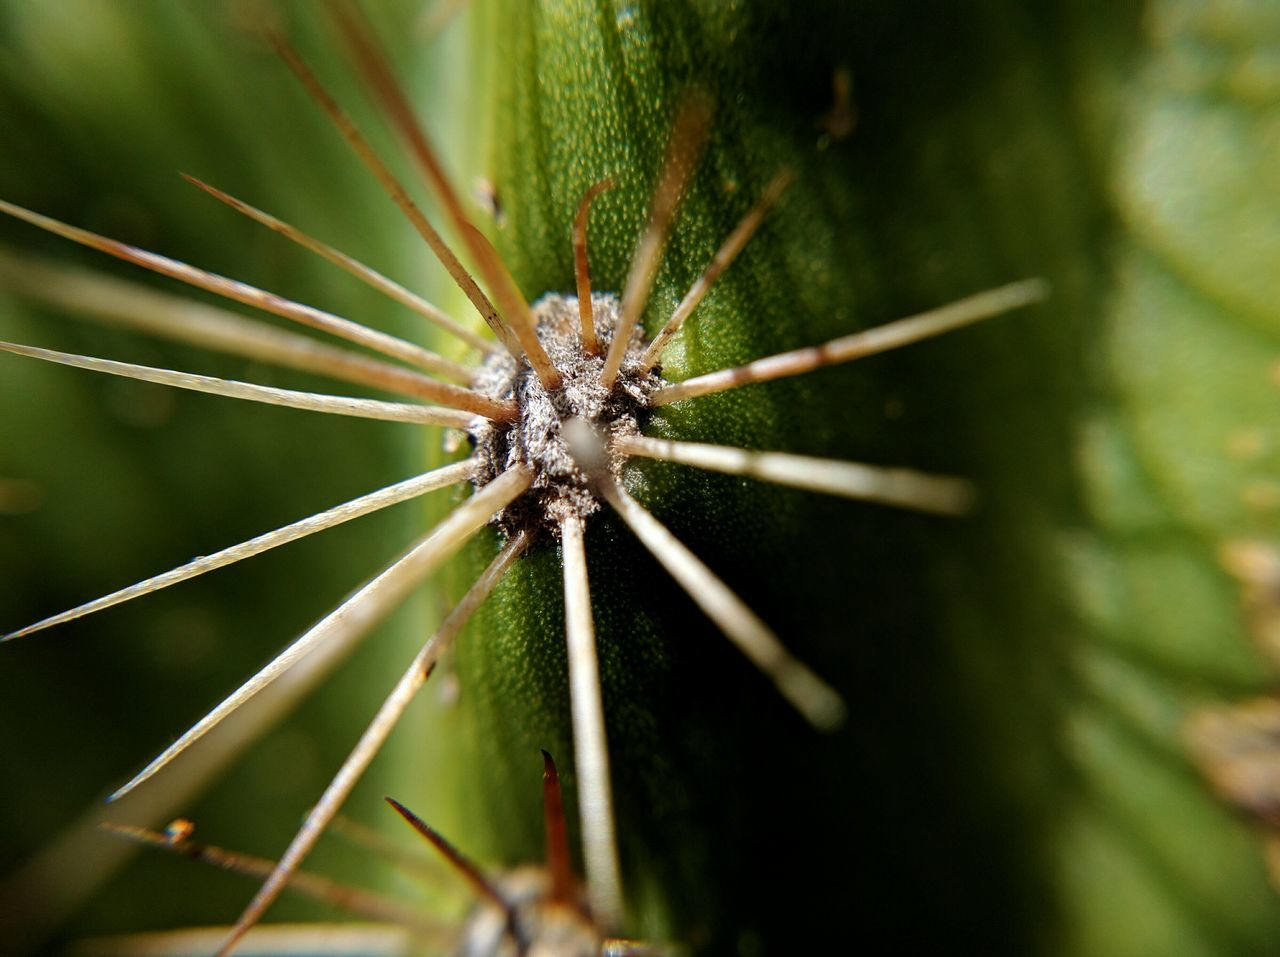 Close-up Green Color No People Cactus Cactus Spines Succulent Plant Pricks